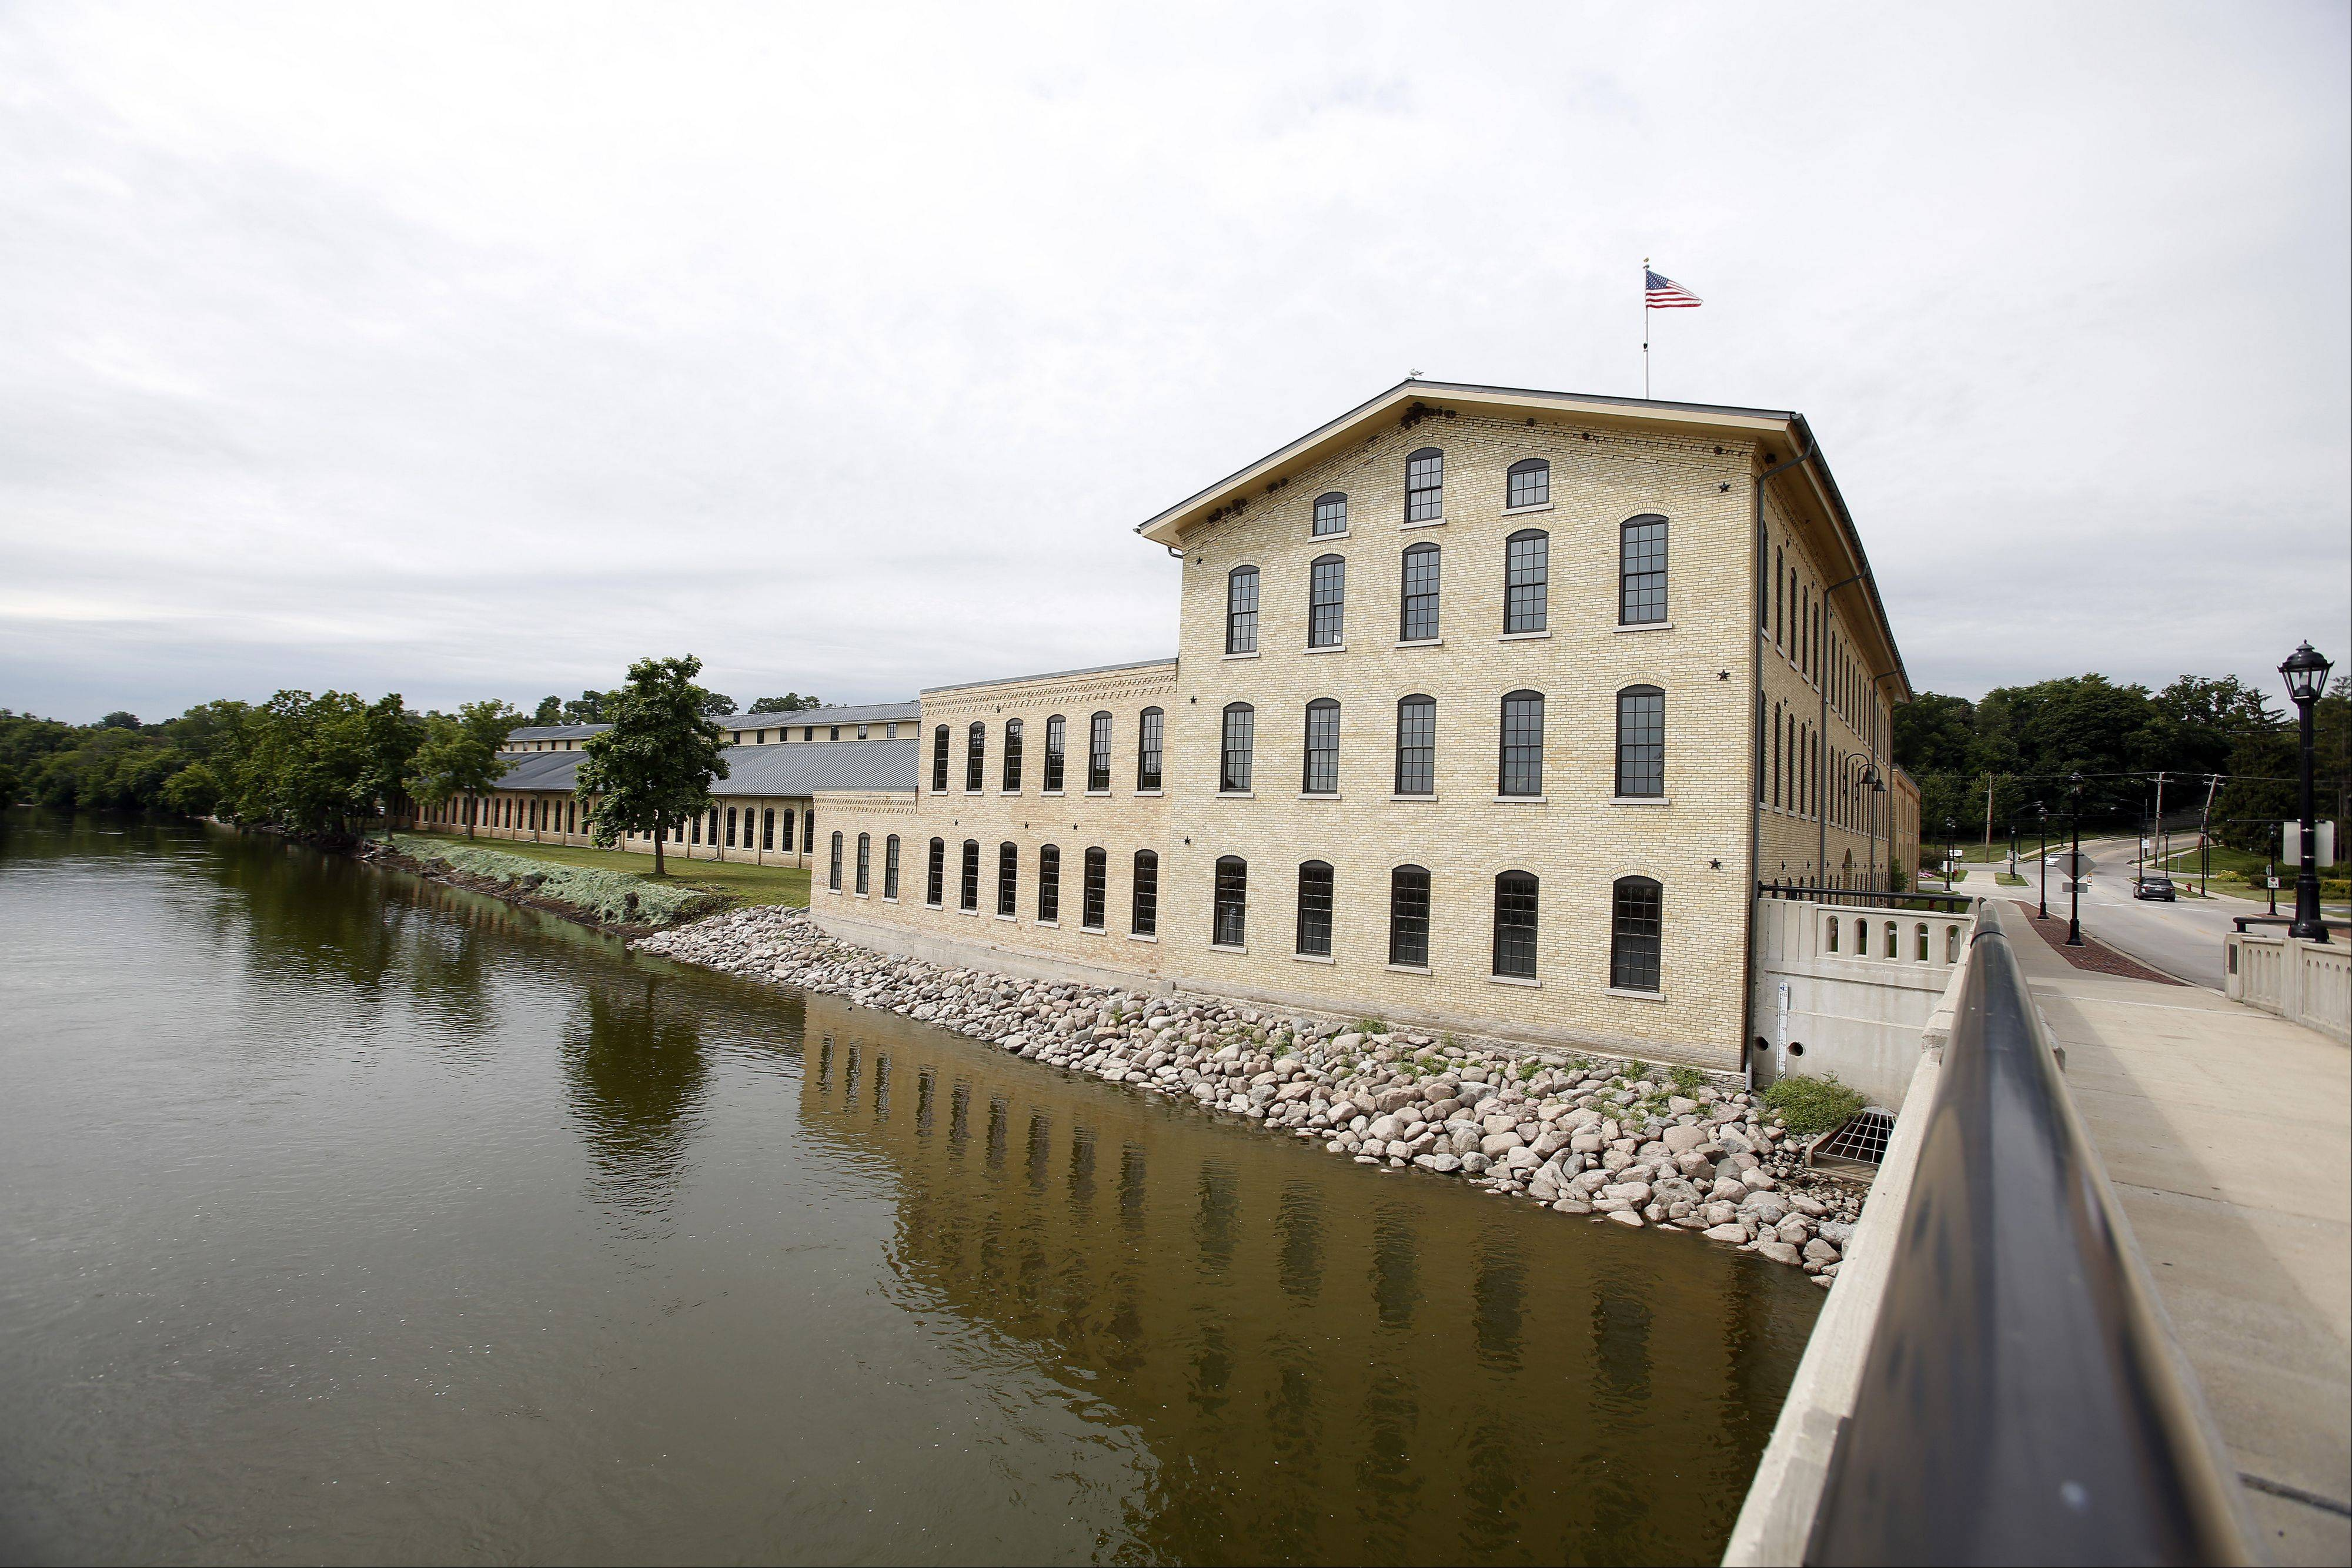 Otto Engineering in Carpentersville spent millions of dollars renovating its buildings and beautifying its part of the Fox River, a move Carpentersville officials say has inspired them to improve other parts of the river.